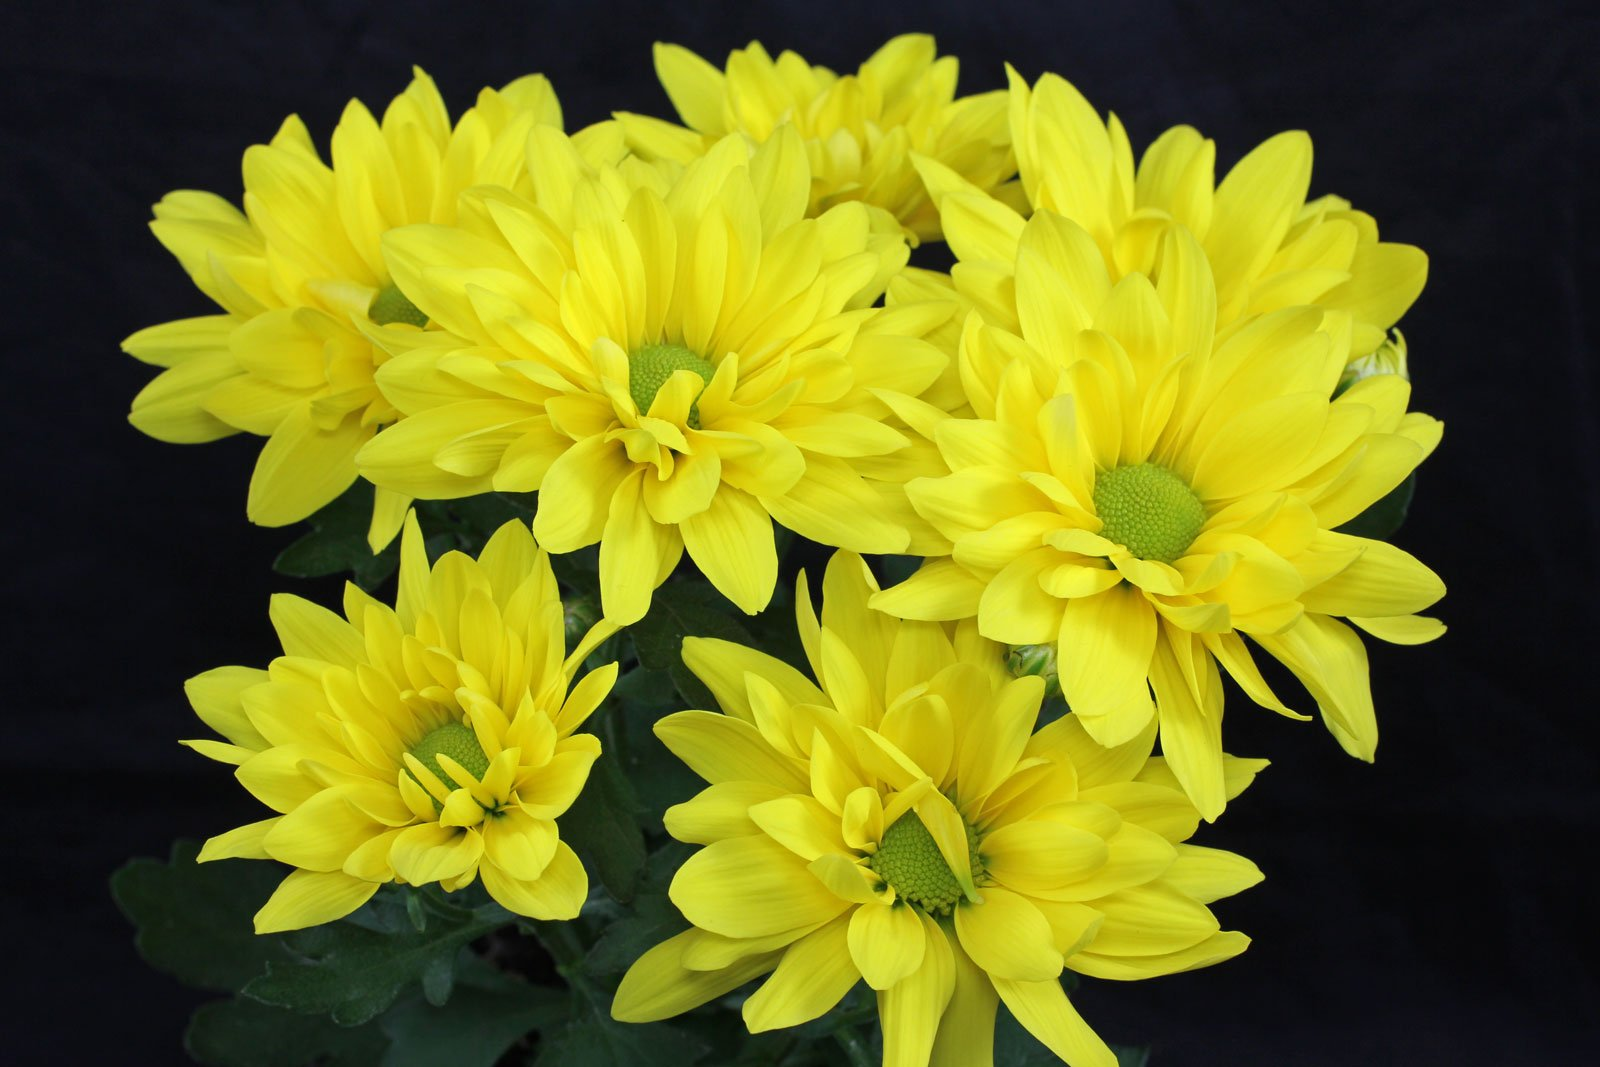 Chrysanthemen Pflege Chrysanthemen Pflege